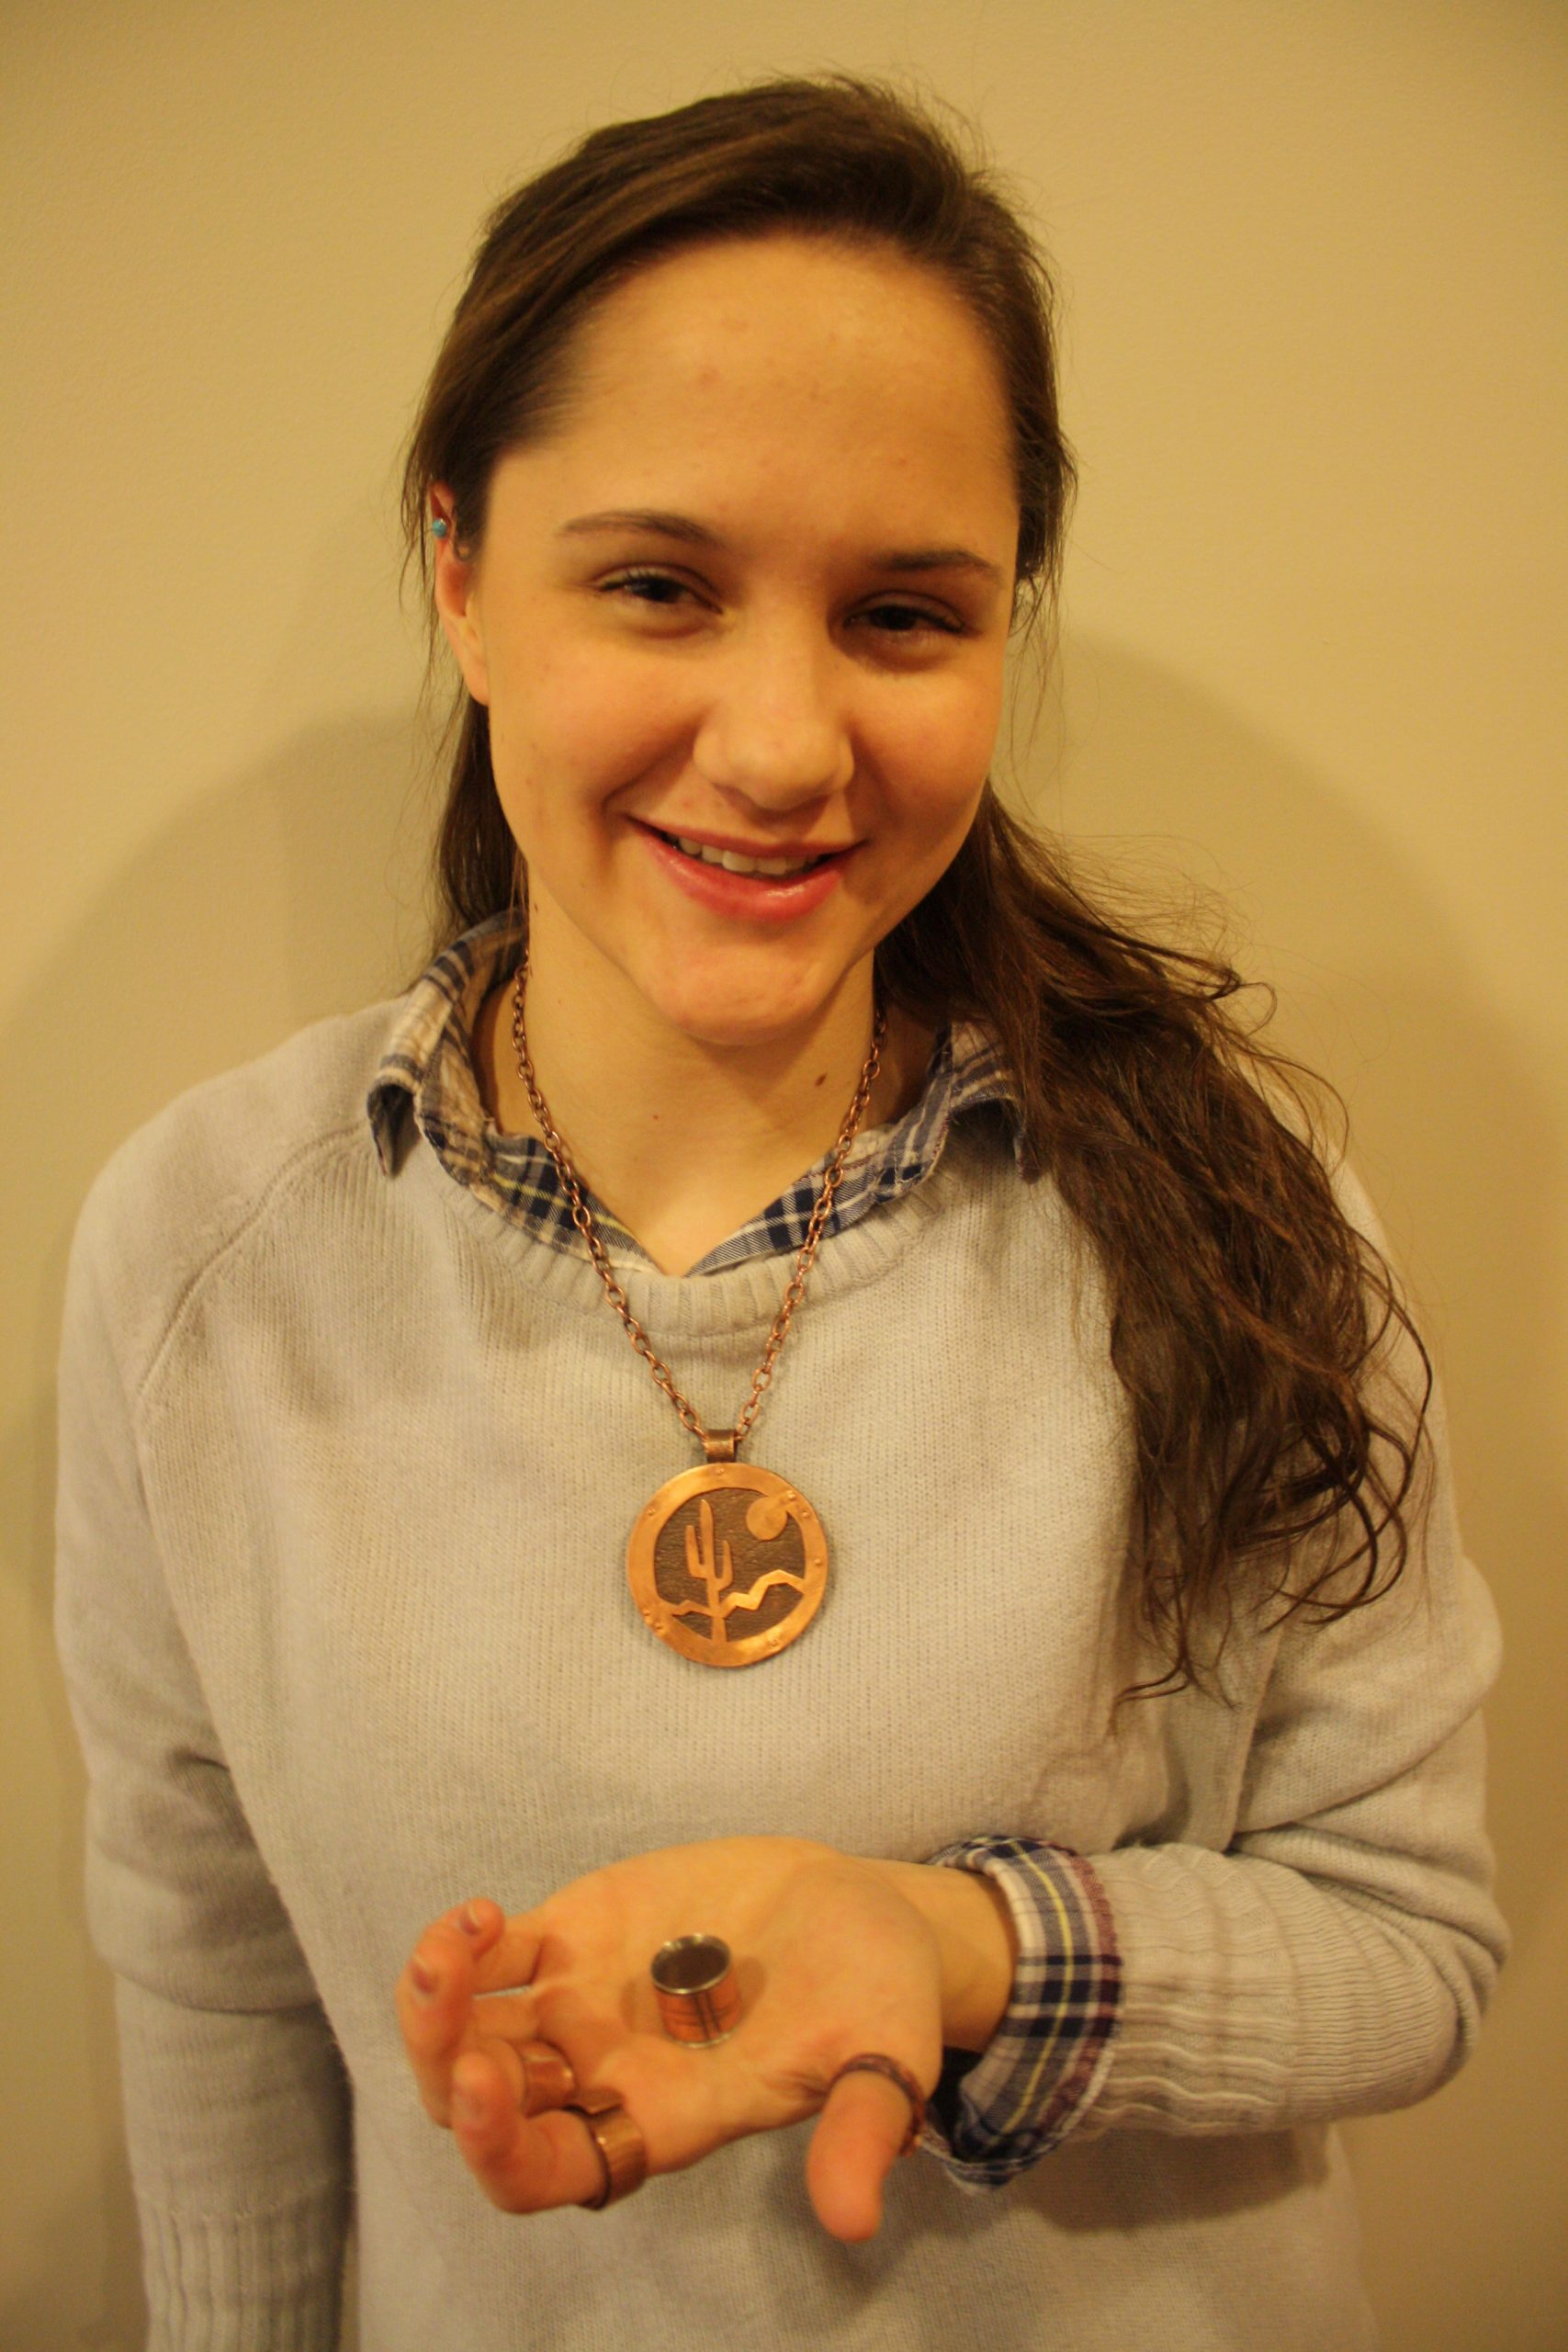 Mandy Schlabach holds one of her handmade rings